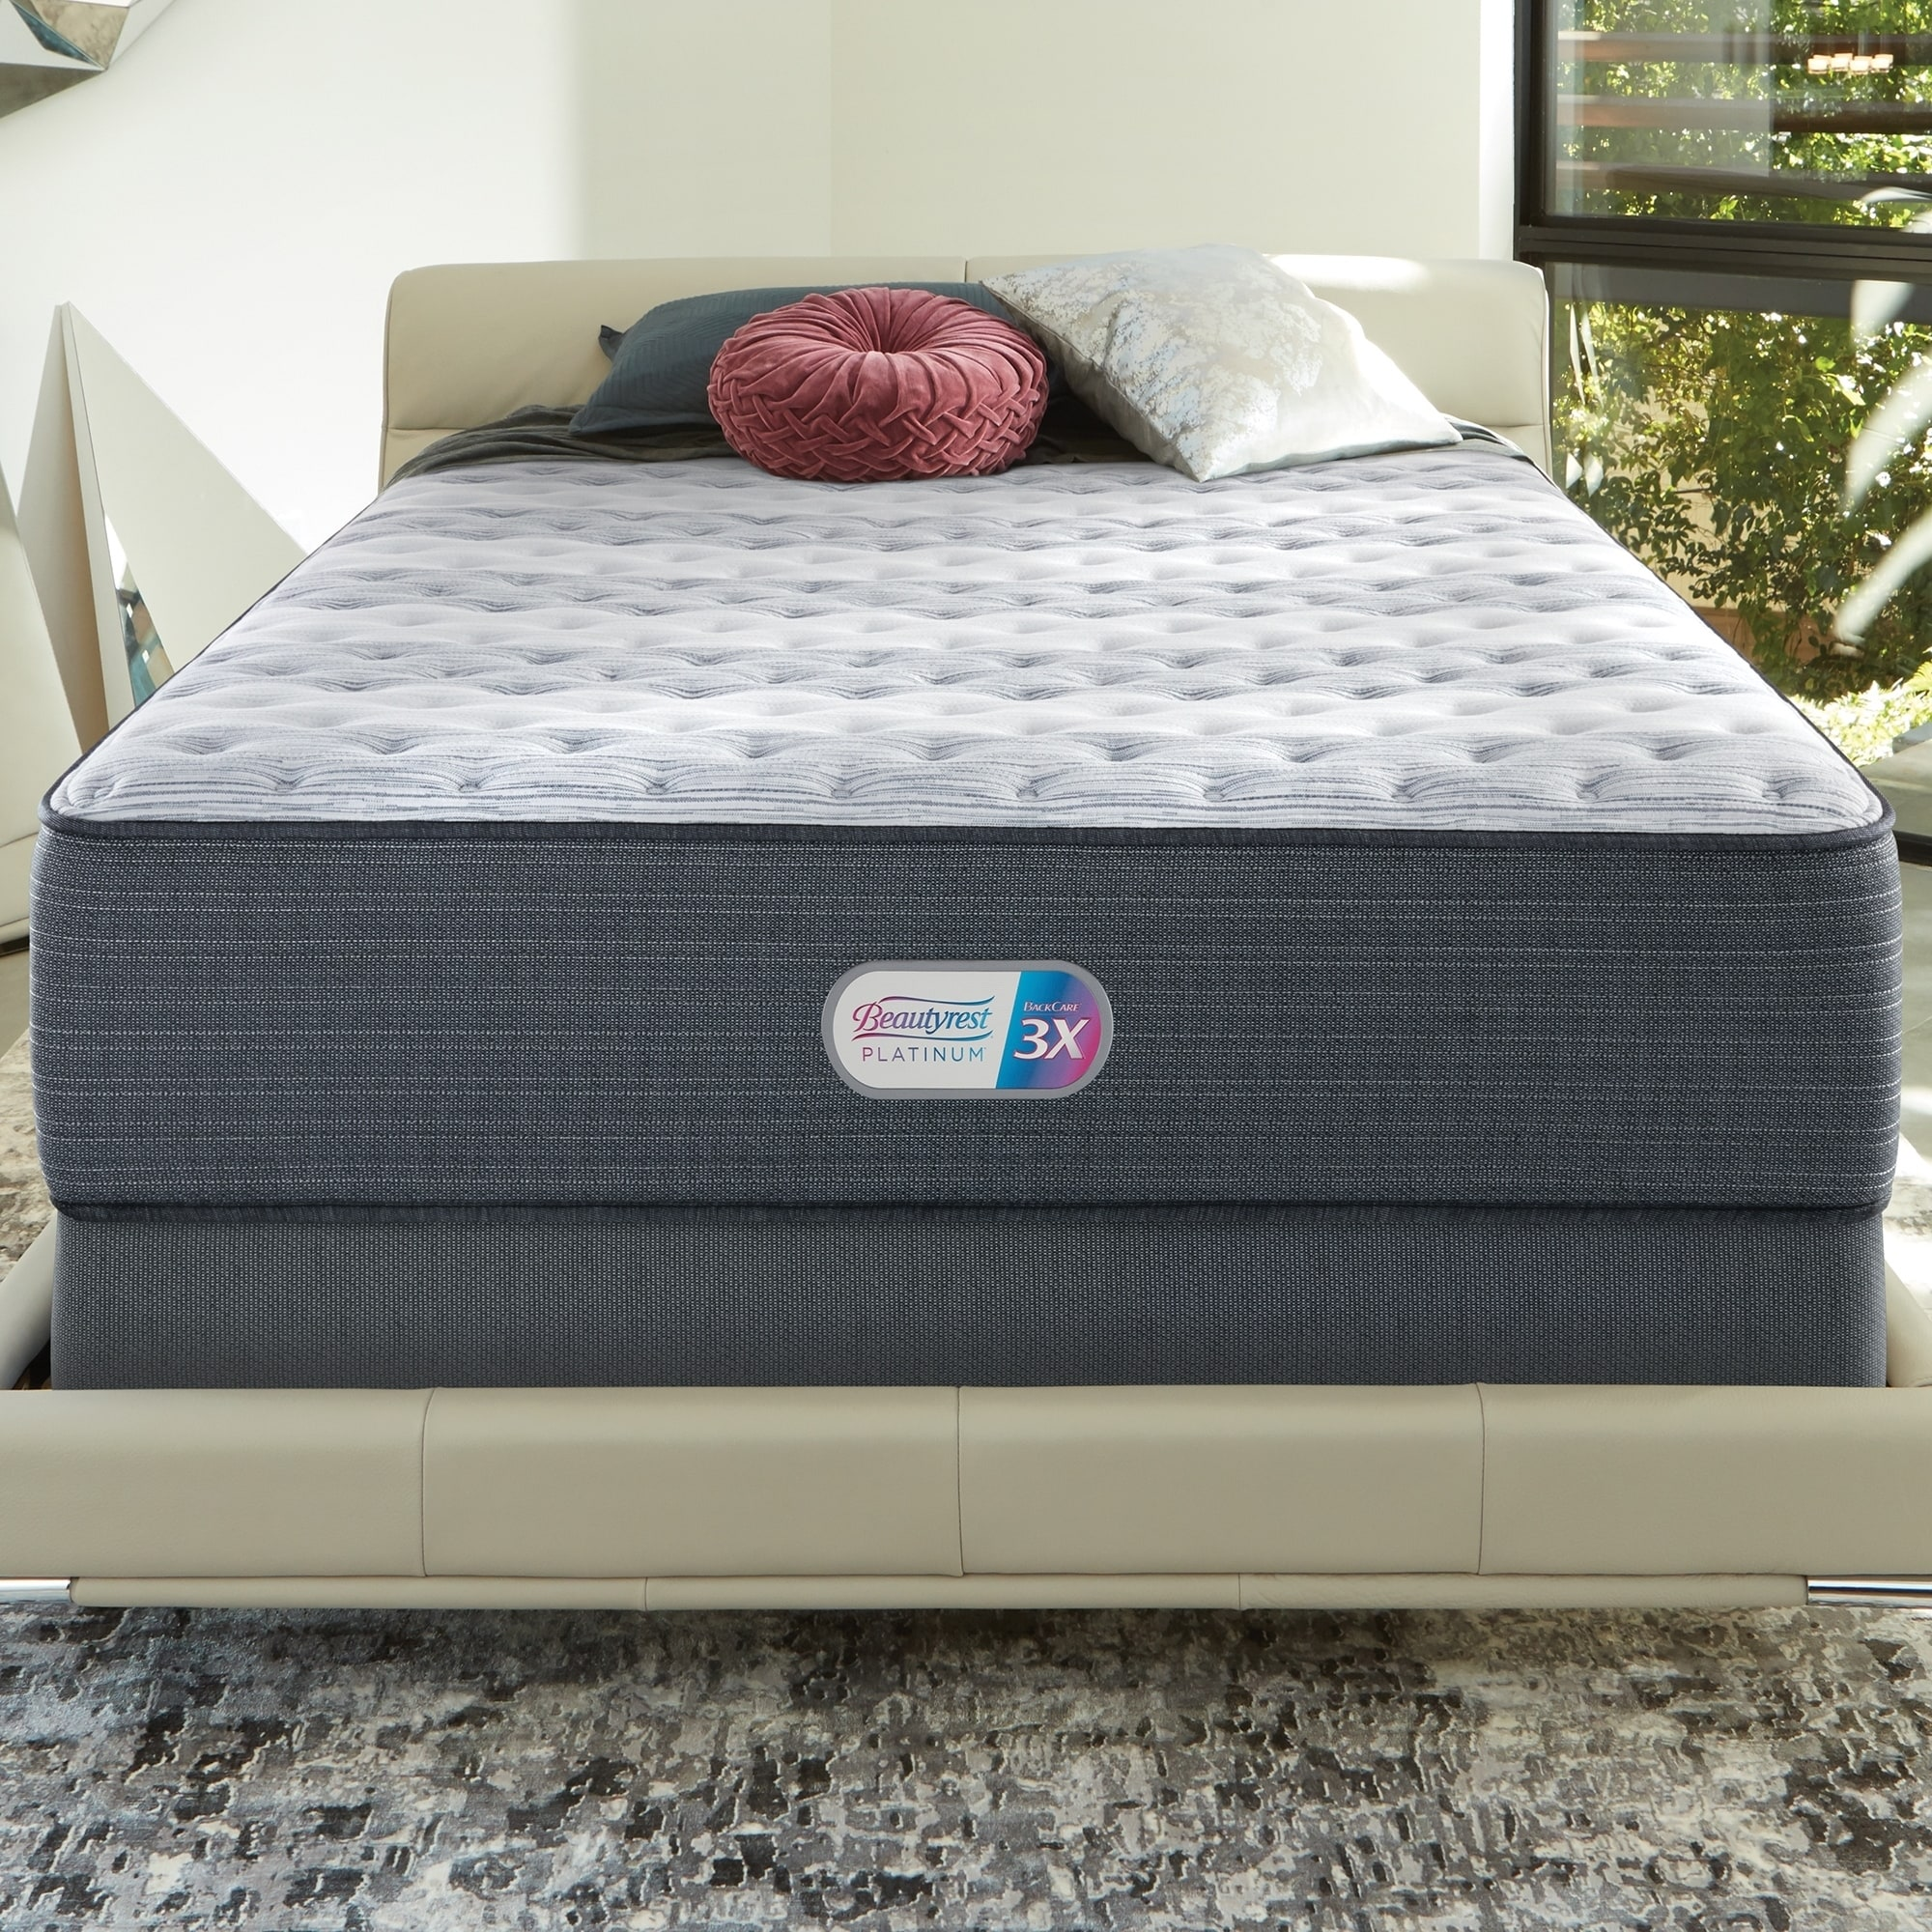 Shop Beautyrest Platinum Haven Pines 14 inch Extra Firm Full size